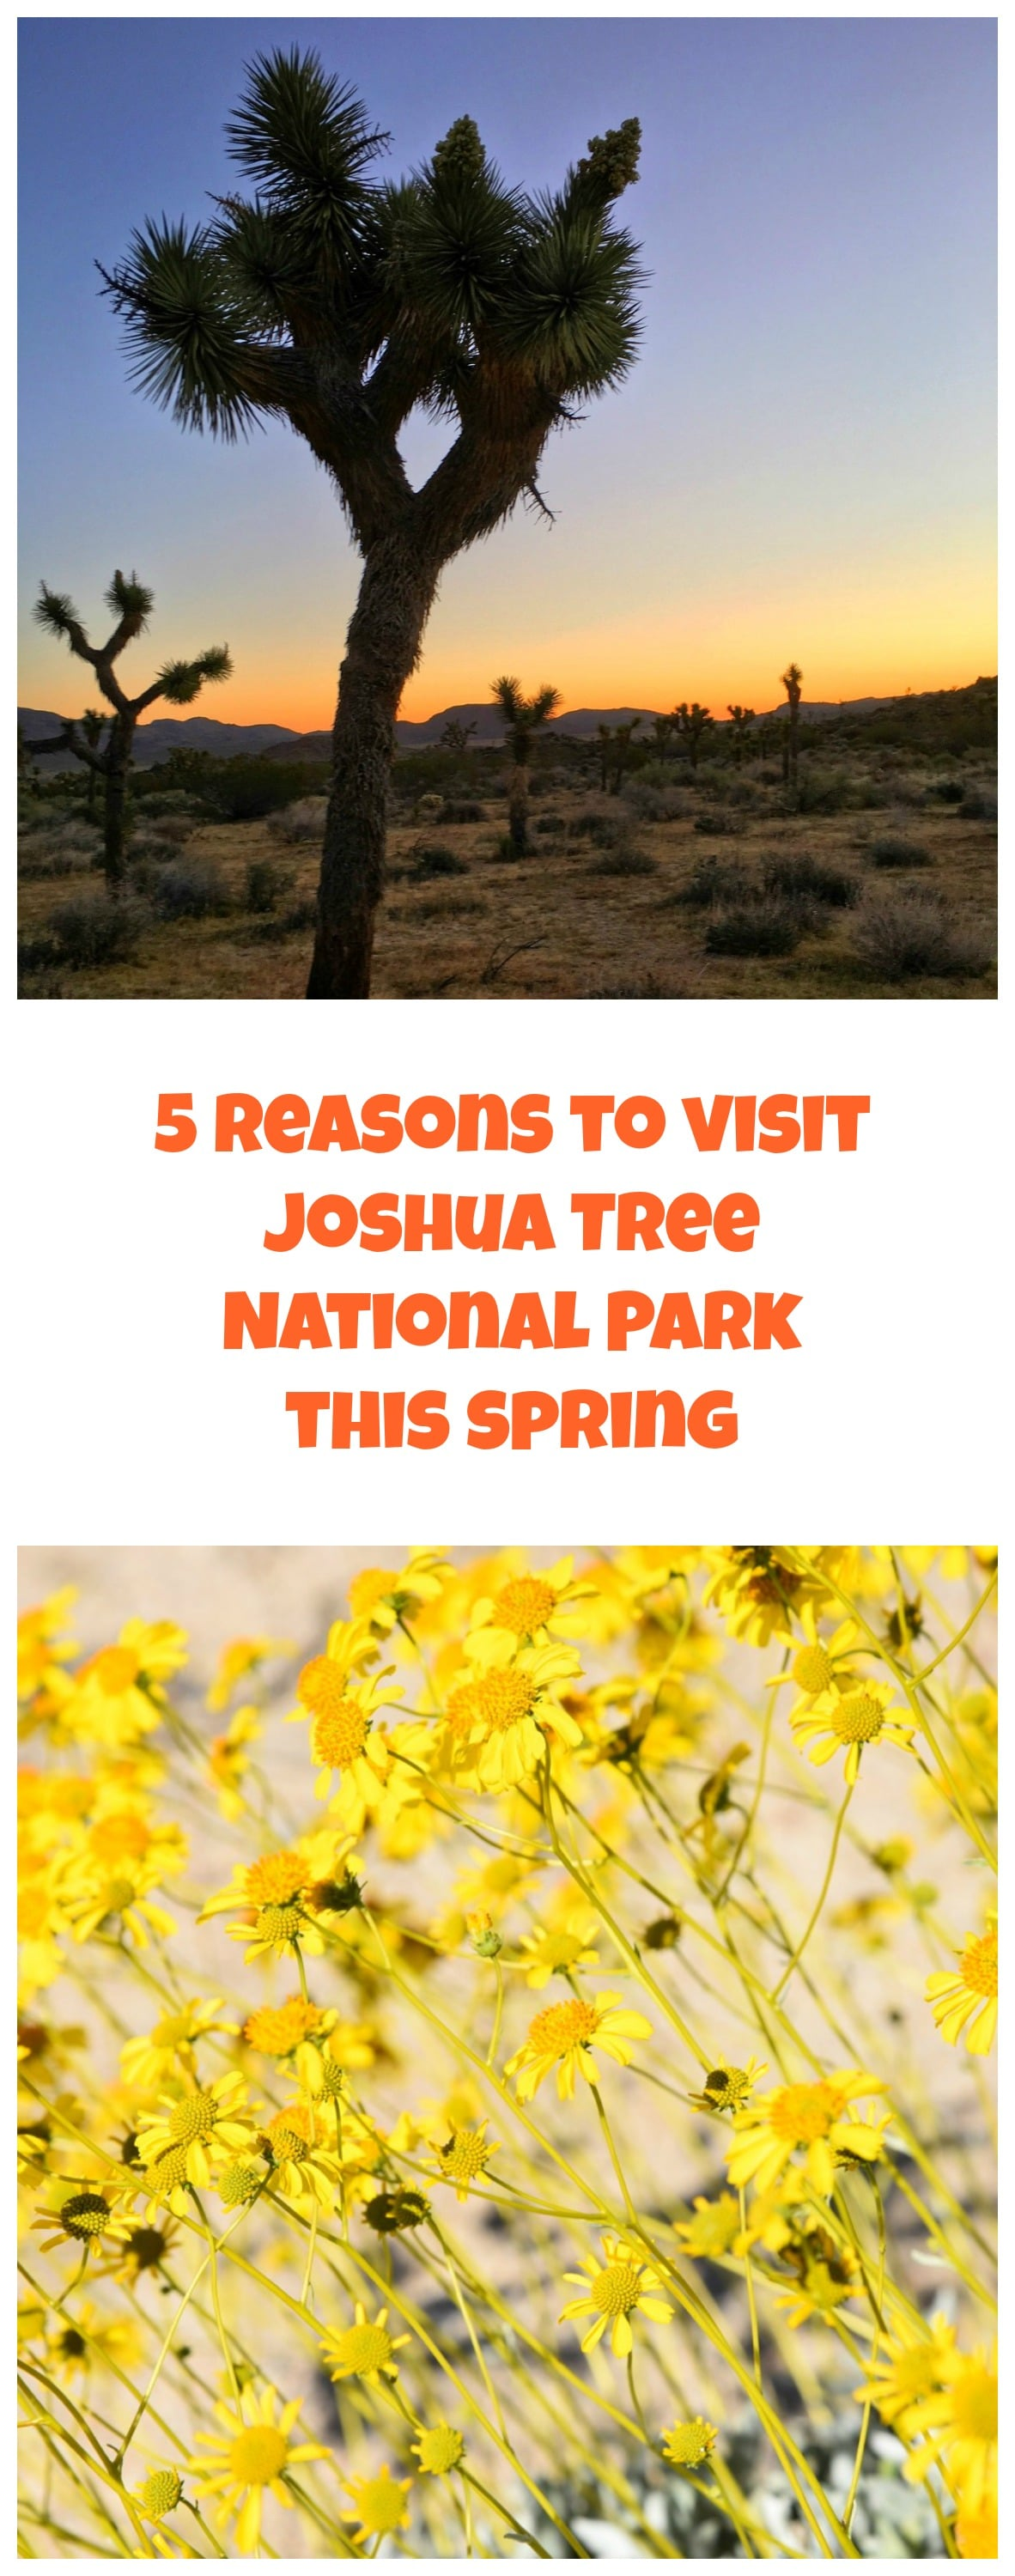 5 Reasons to Visit Joshua Tree National Park this Spring